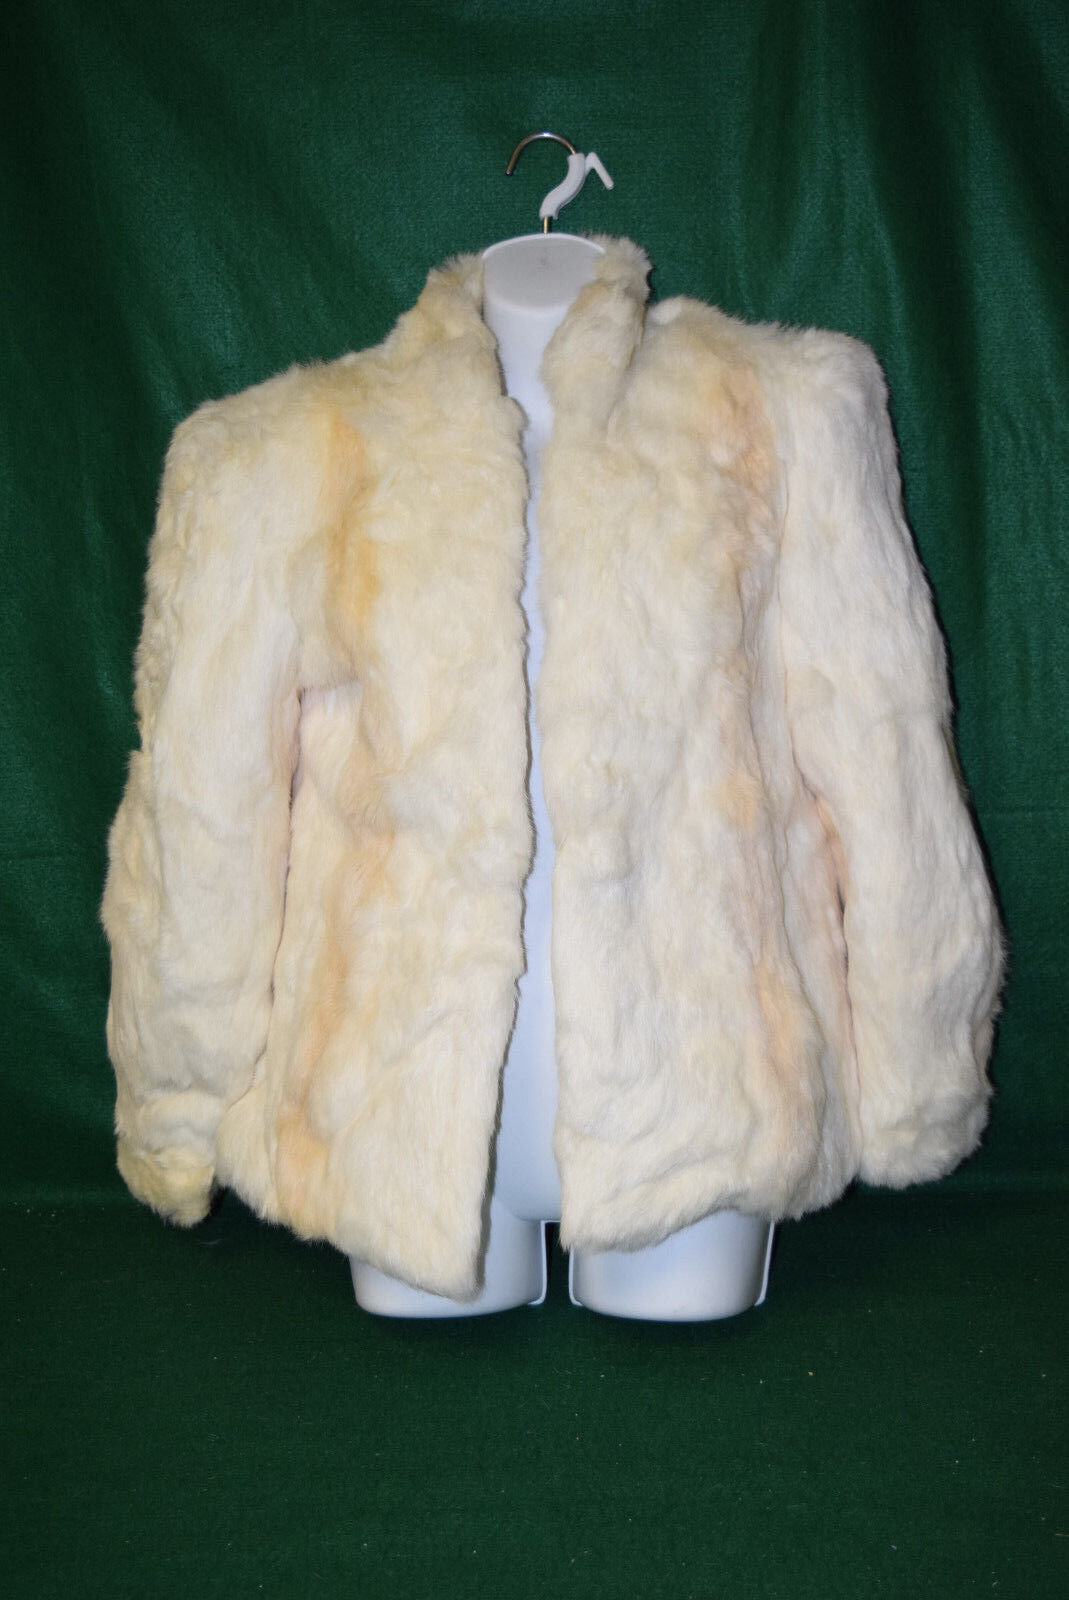 Vintage White with Tan Streaks - Rabbit Fur Coat - Size Small